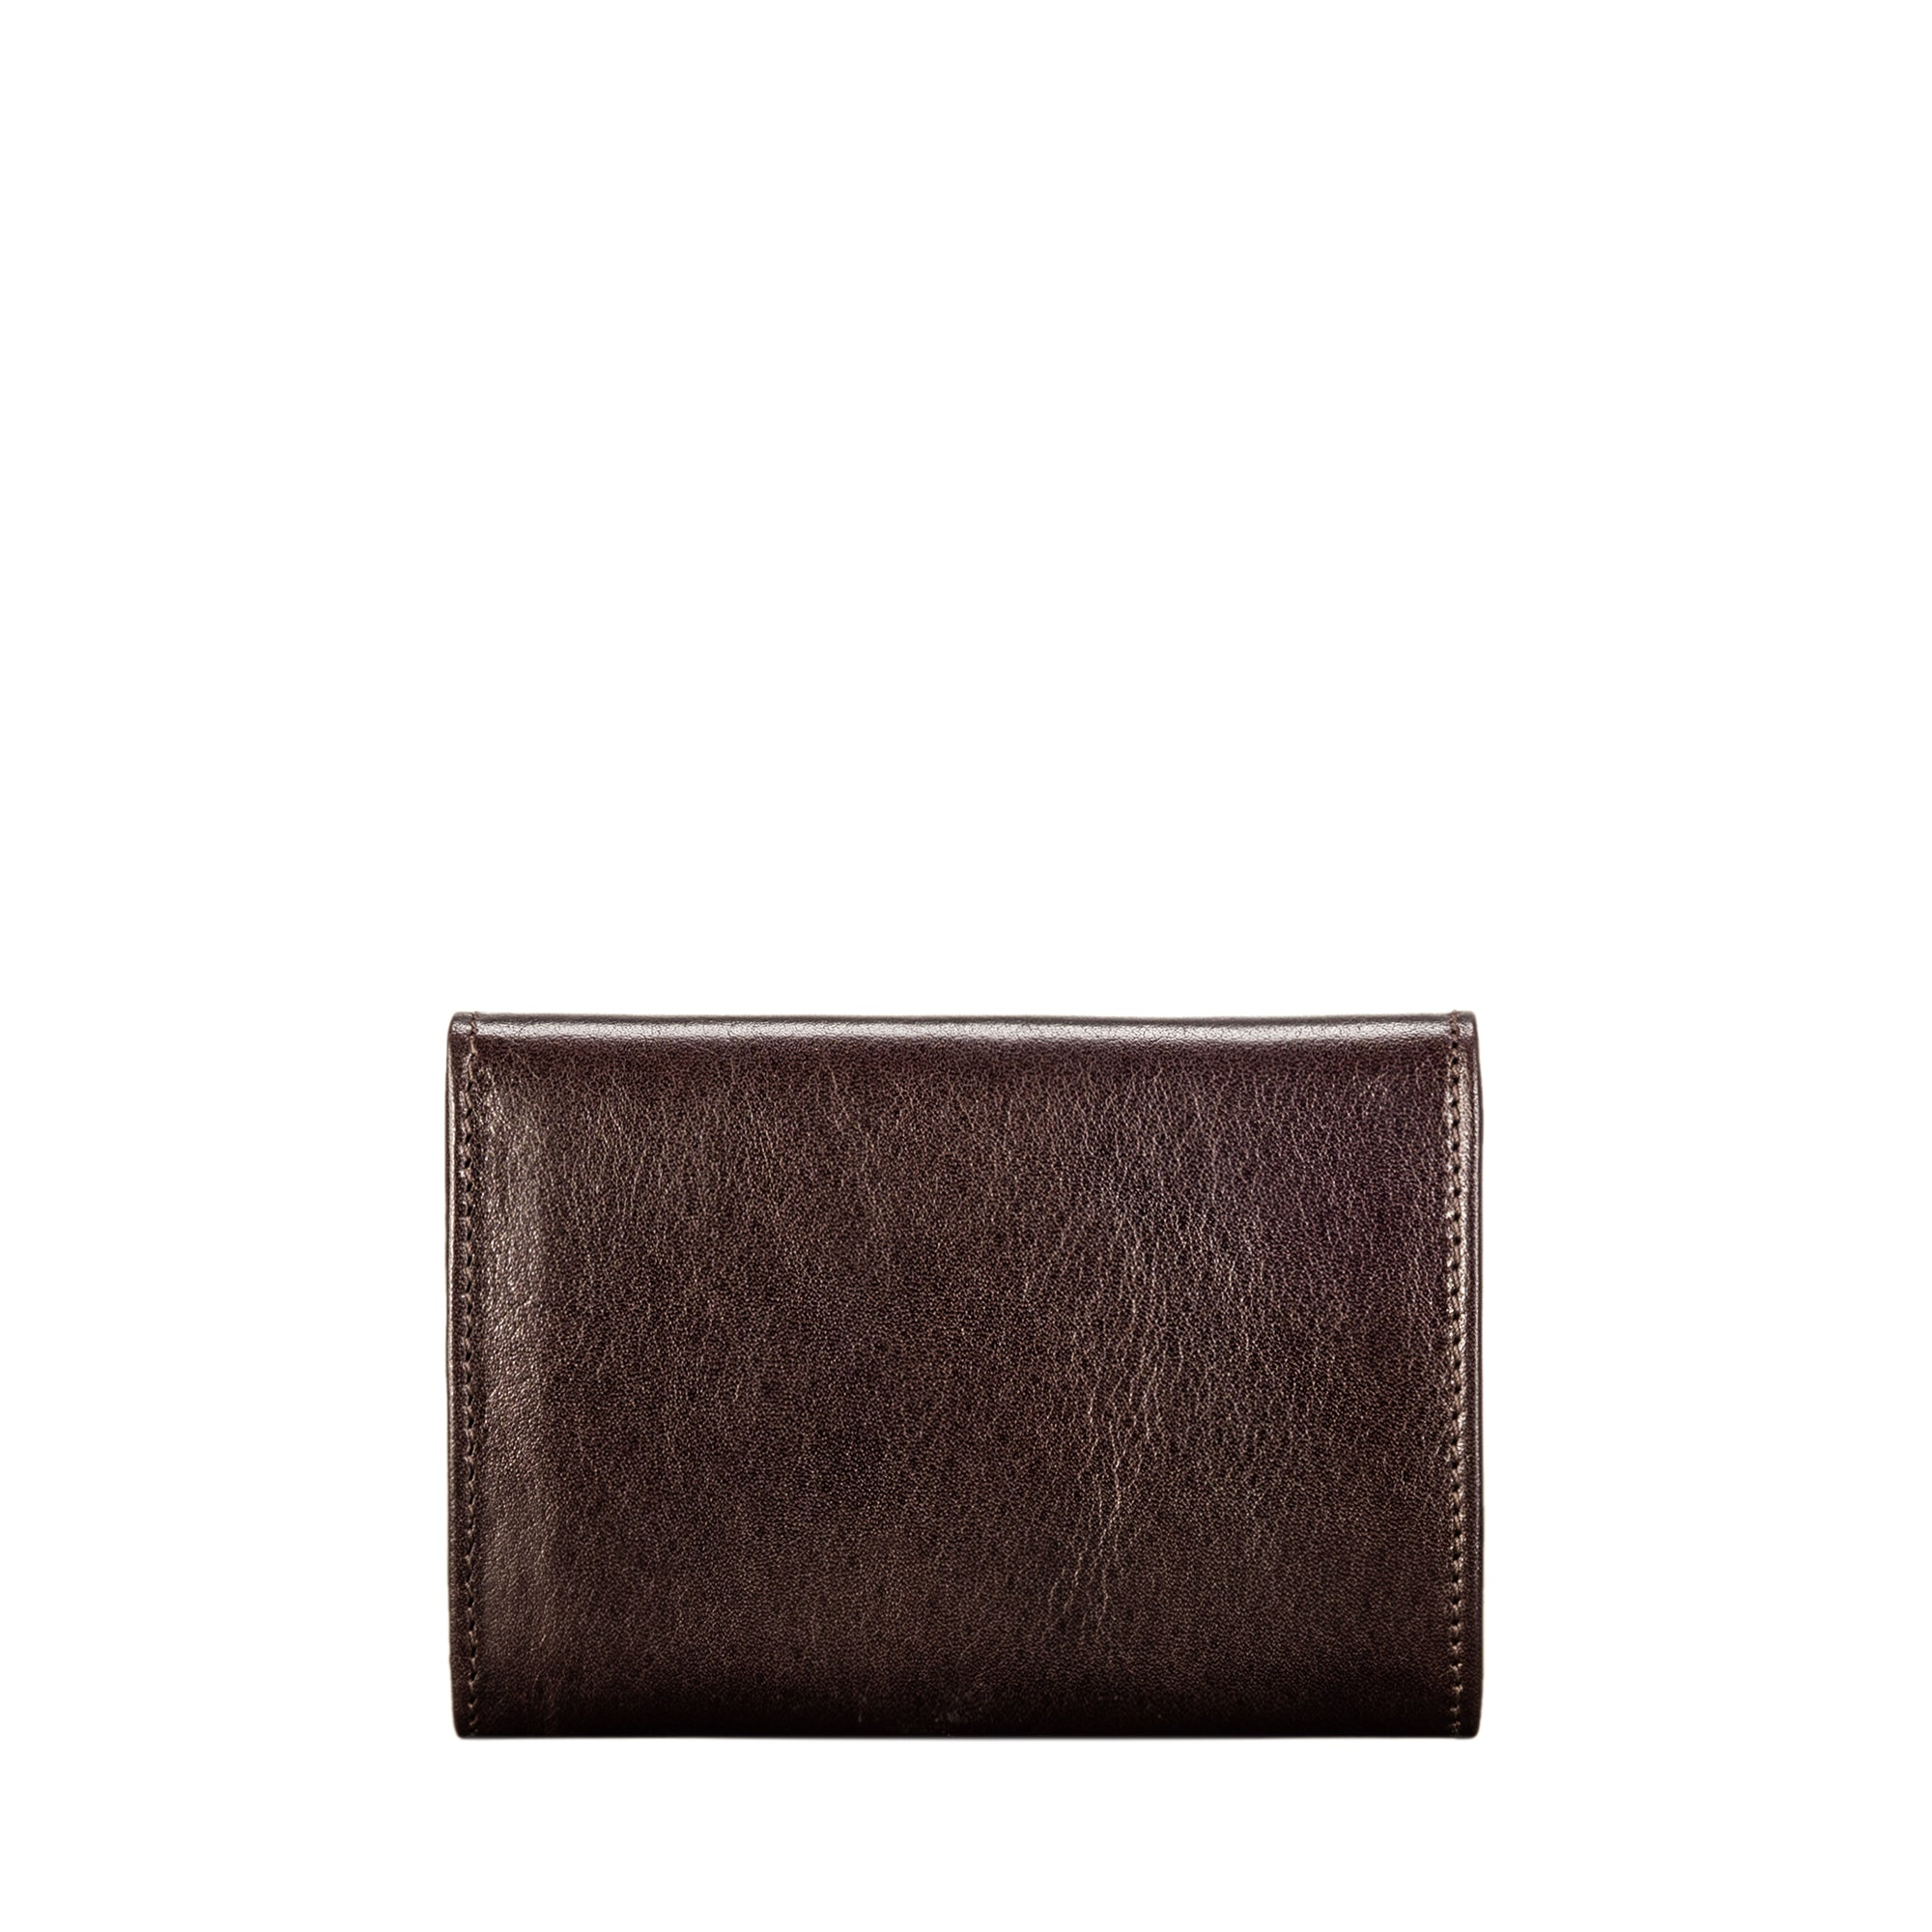 Image 5 of the 'Fontanelle' Compact Brown Veg-Tanned Leather Purse